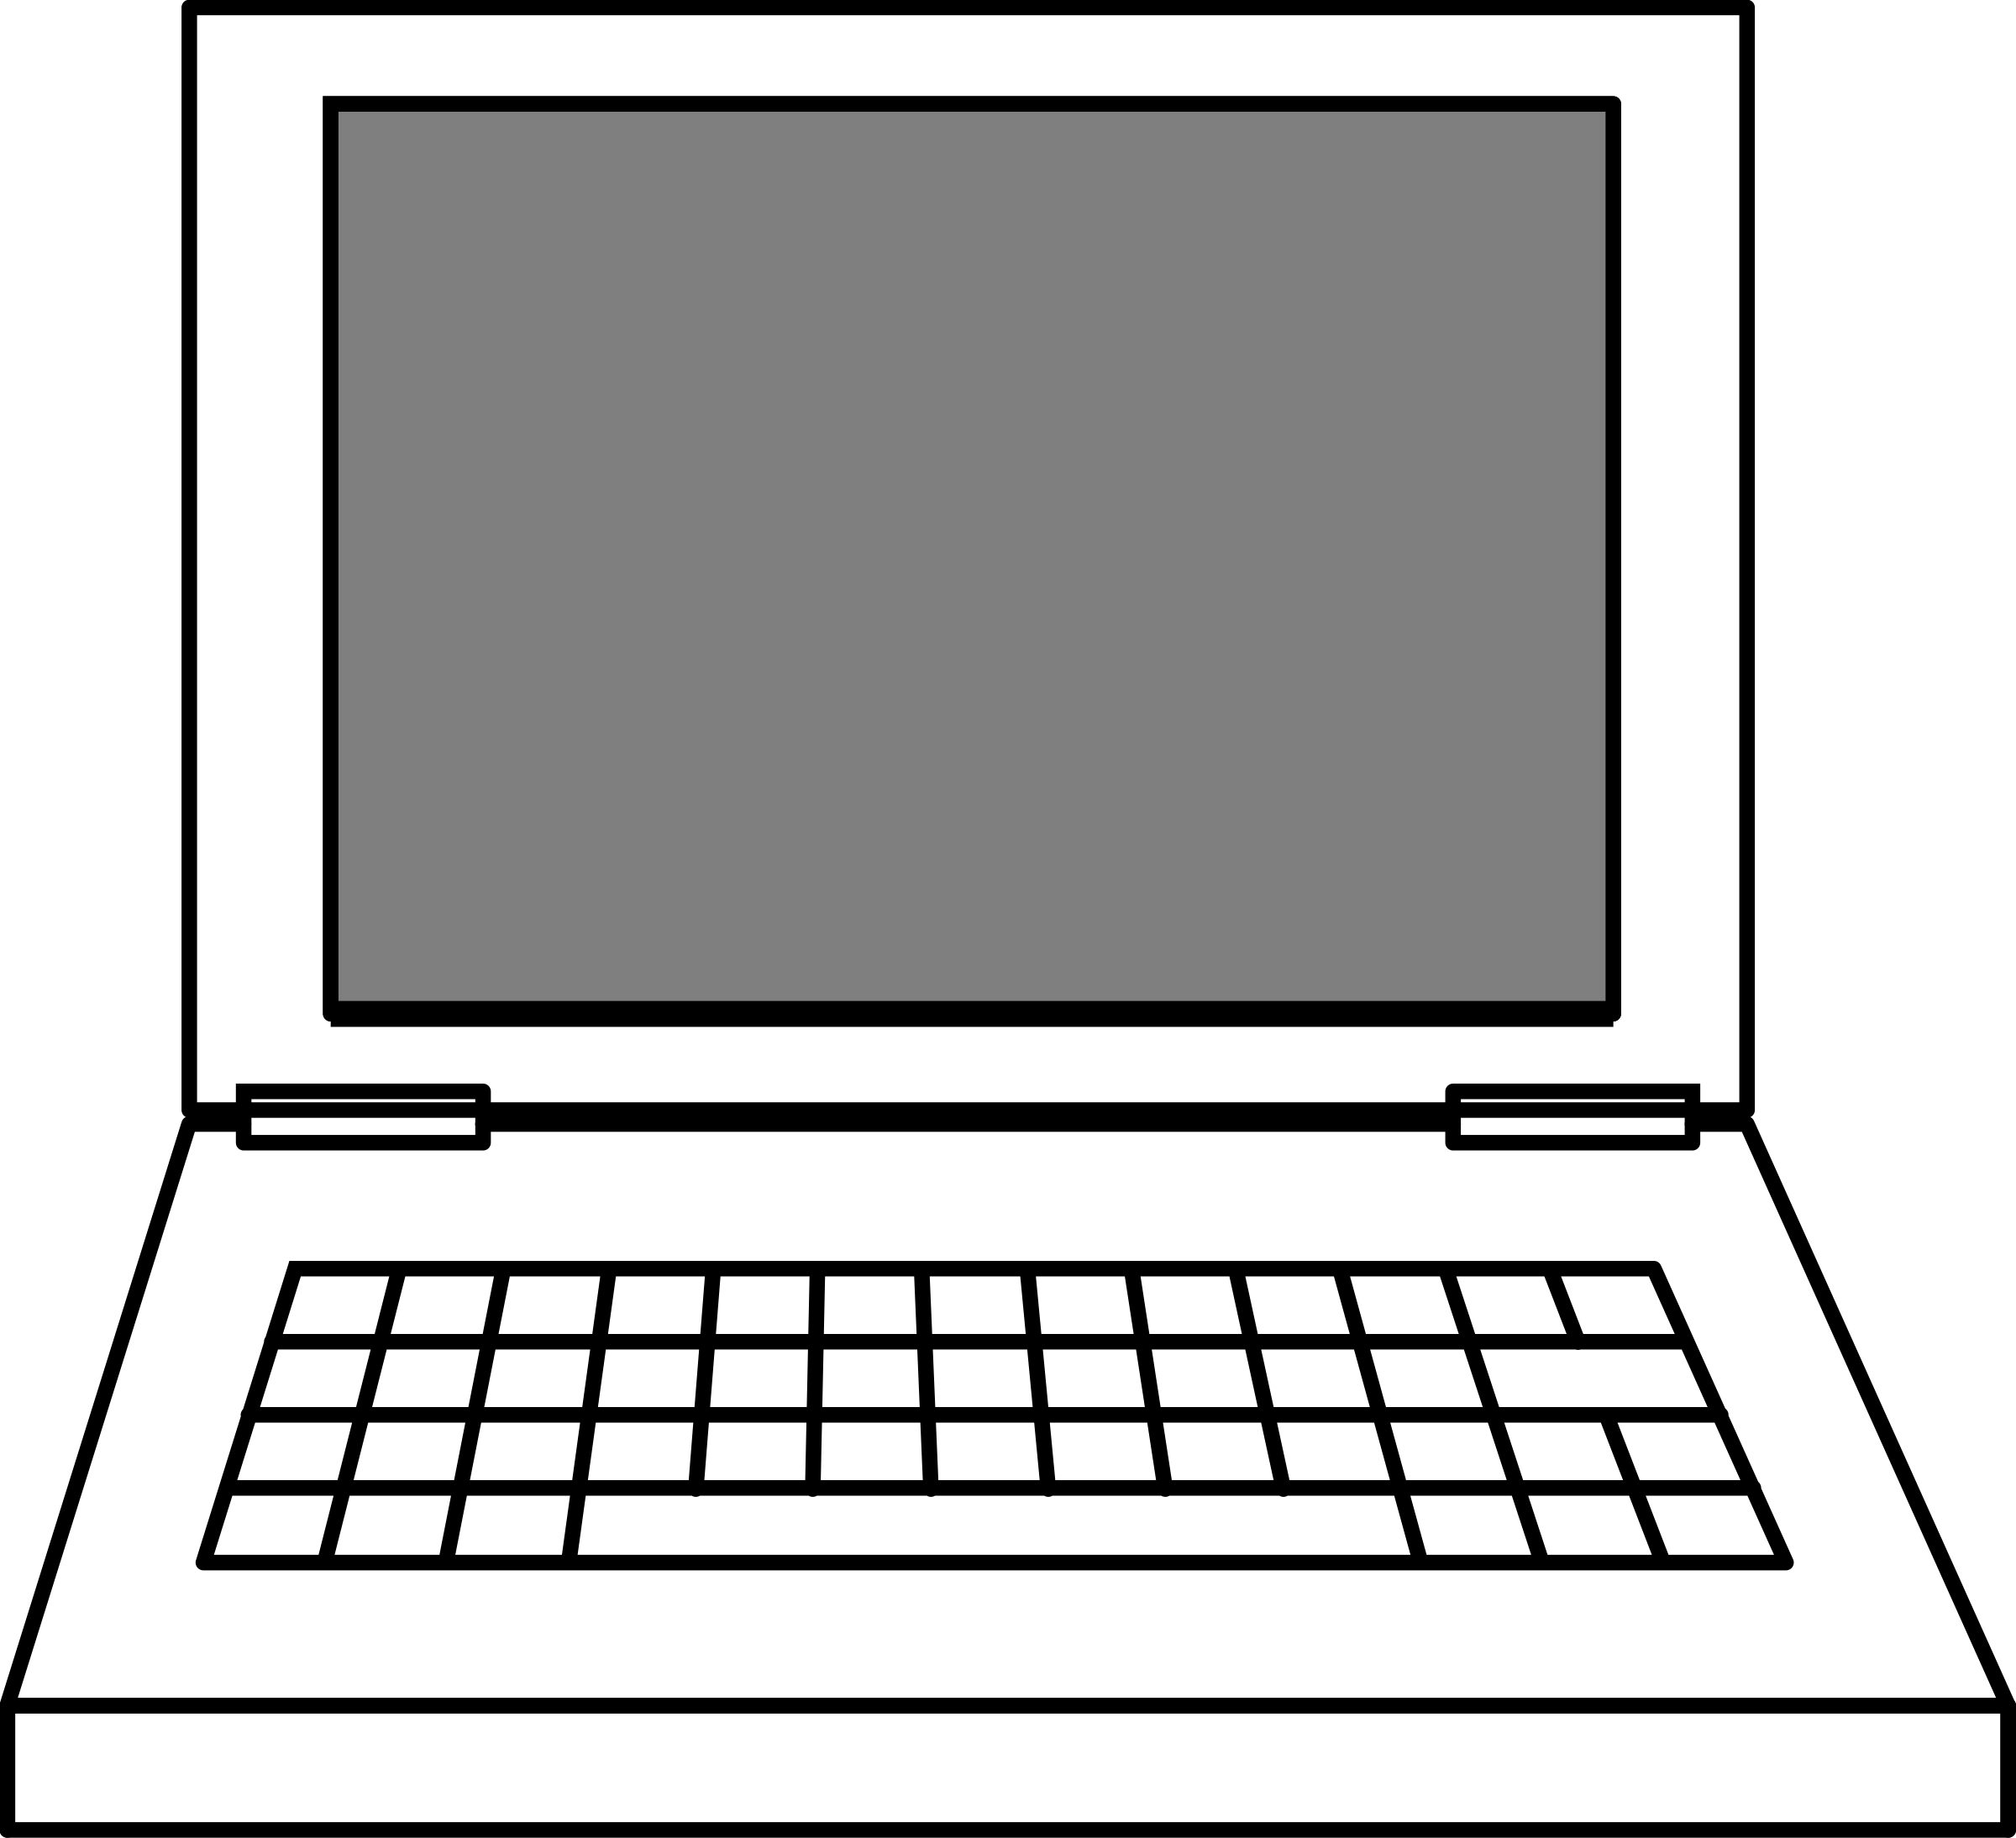 transparent computer picture. Drawing computers easy clip art free